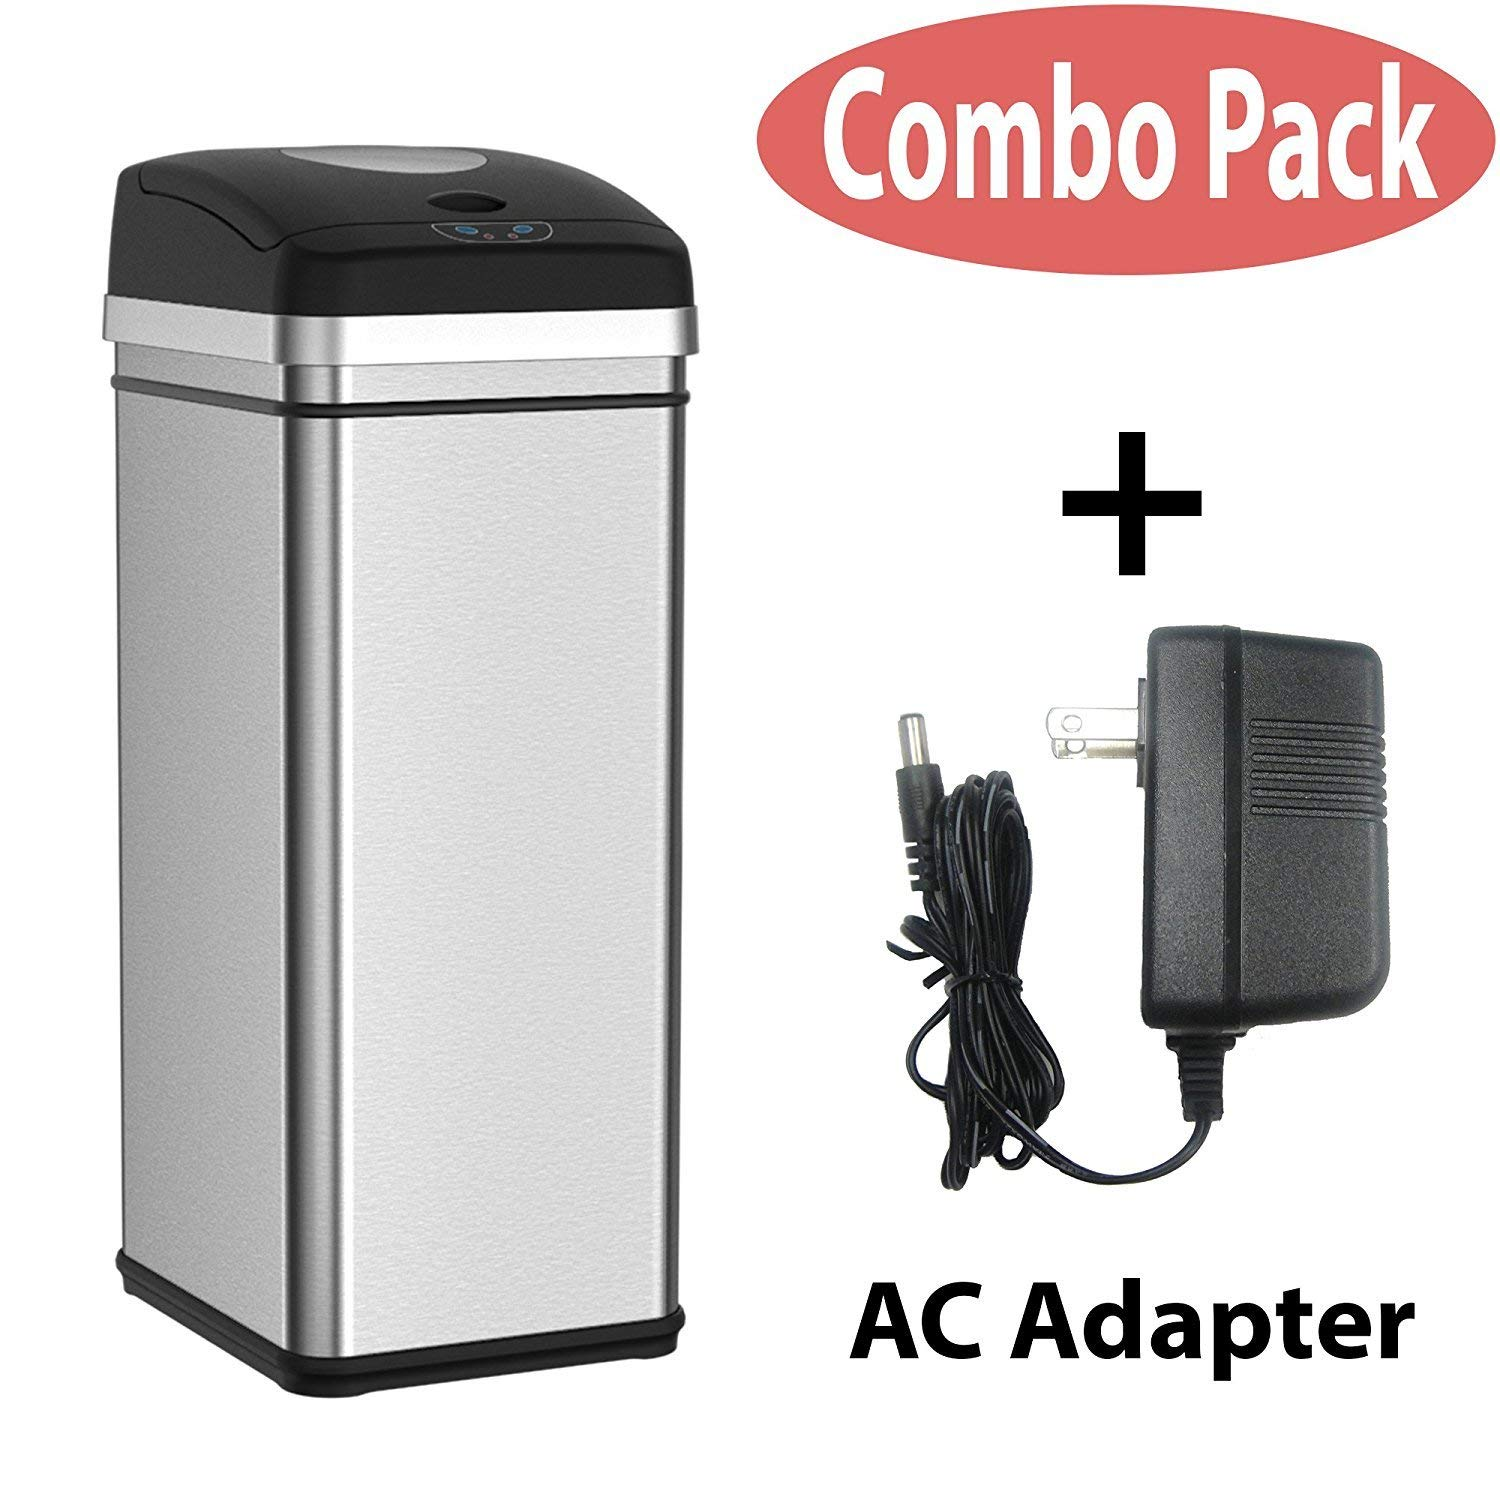 ab879f5e582 Get Quotations · Halo 13 Gallon Touchless Trash Compactor Automatic Trash  Can